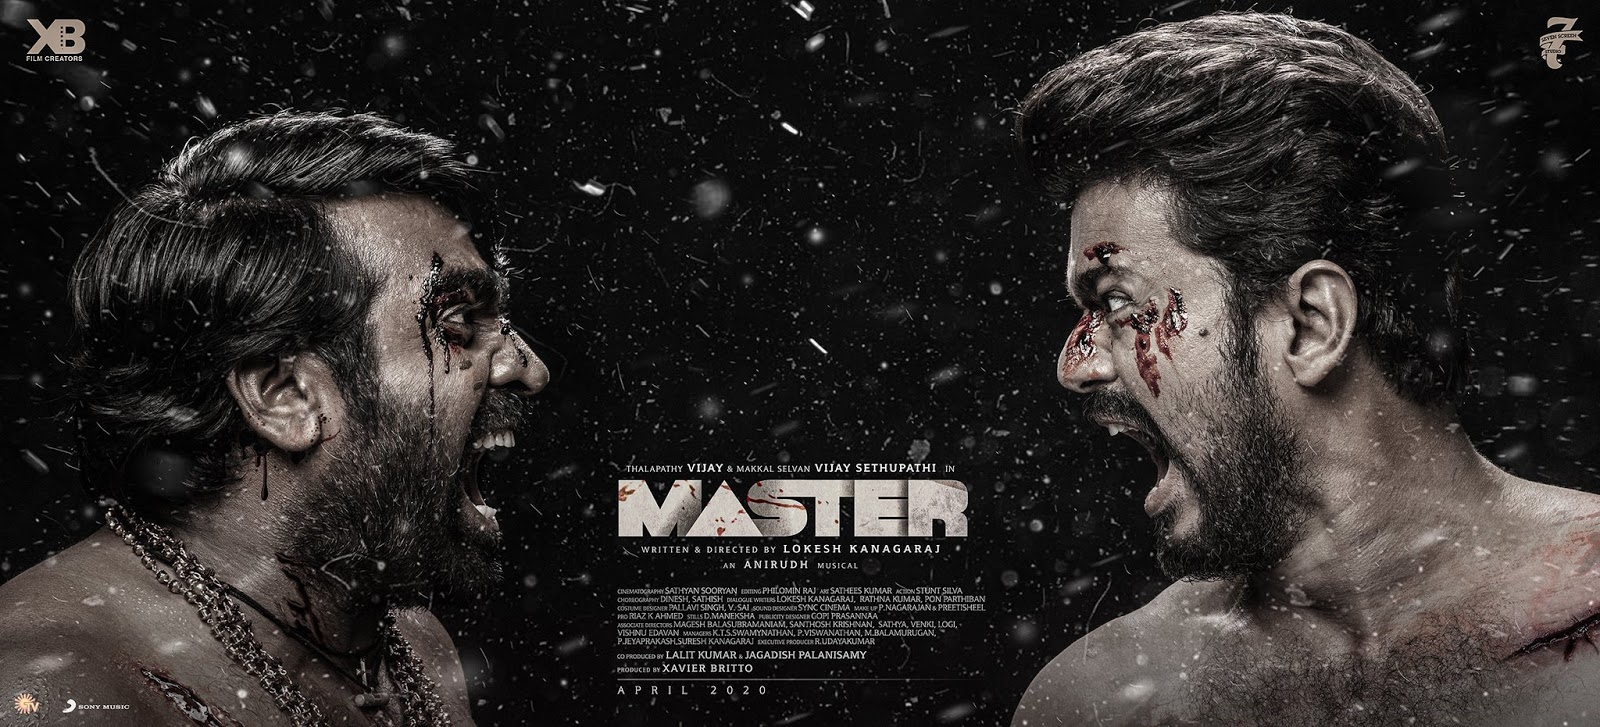 Thalapathy Vijay and Vijay Sethupathi's Master third look